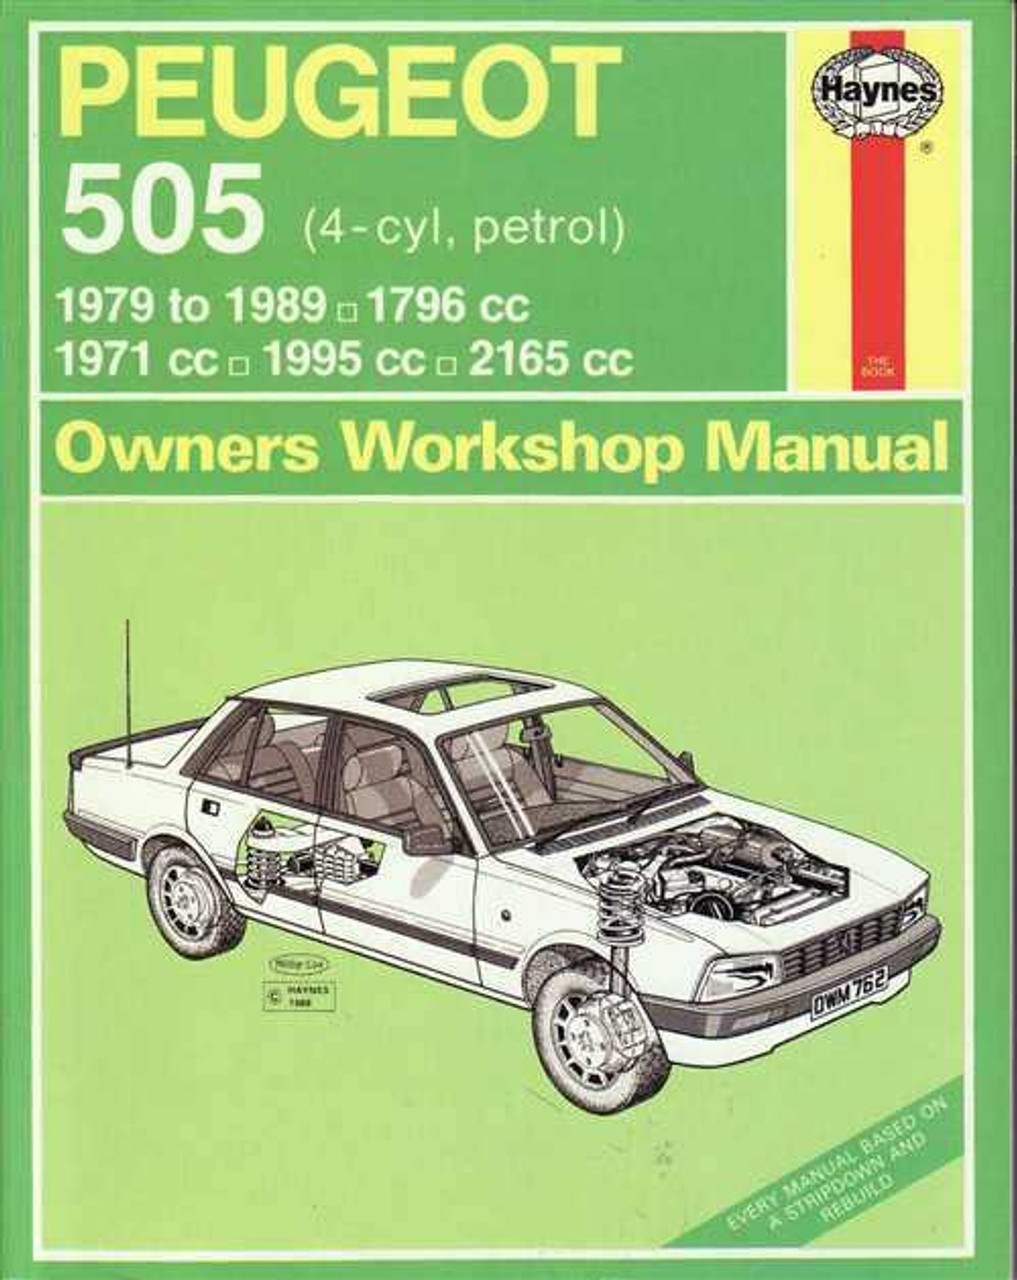 peugeot 505 1971 1995 workshop manual rh automotobookshop com au Peugeot 505 GTI Dash Board 1987-1992 Peugeot 505 Craigslist